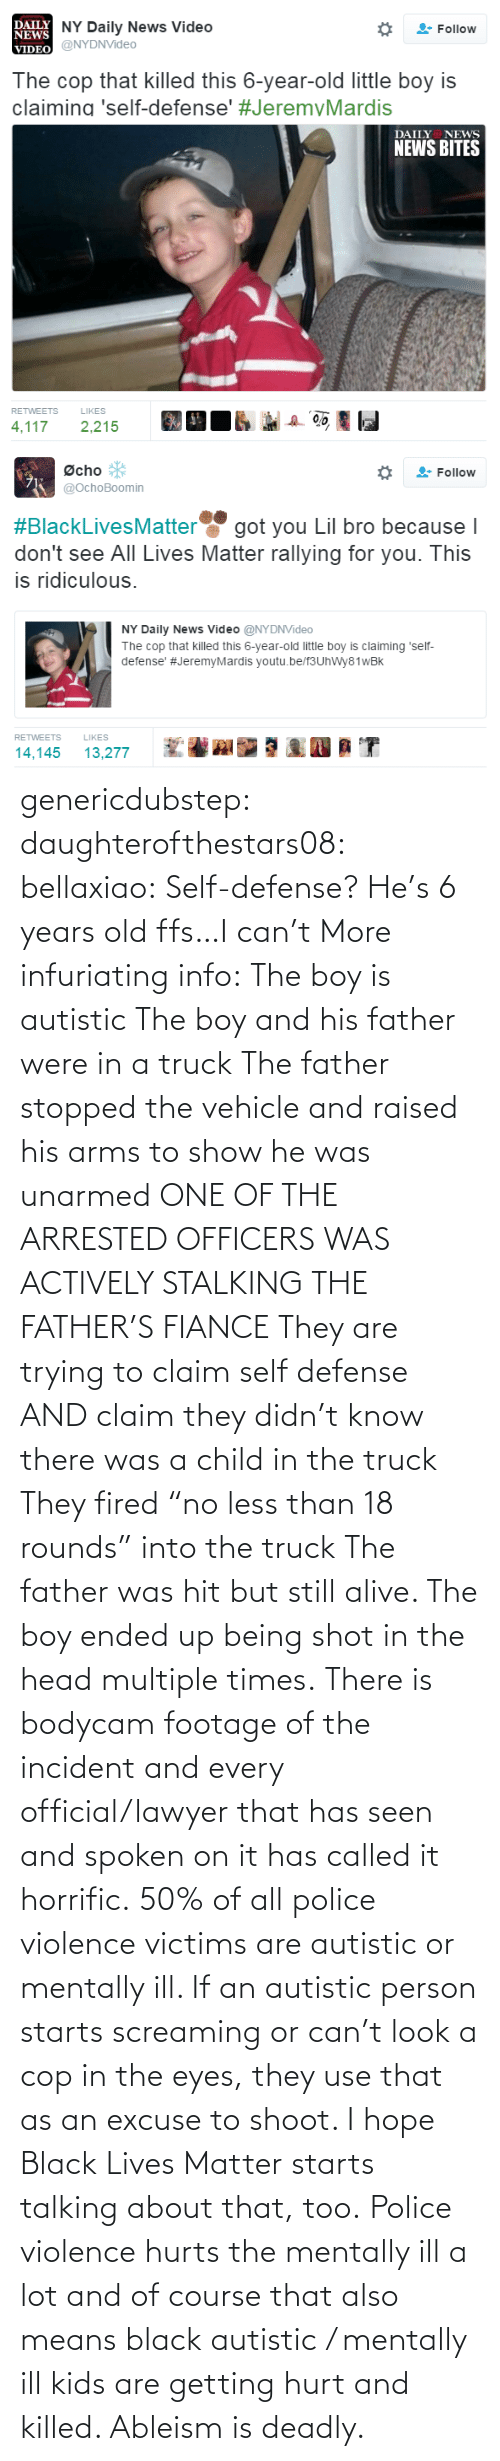 "cop: genericdubstep: daughterofthestars08:  bellaxiao:  Self-defense? He's 6 years old ffs…I can't  More infuriating info: The boy is autistic The boy and his father were in a truck The father stopped the vehicle and raised his arms to show he was unarmed ONE OF THE ARRESTED OFFICERS WAS ACTIVELY STALKING THE FATHER'S FIANCE They are trying to claim self defense AND claim they didn't know there was a child in the truck They fired ""no less than 18 rounds"" into the truck The father was hit but still alive. The boy ended up being shot in the head multiple times. There is bodycam footage of the incident and every official/lawyer that has seen and spoken on it has called it horrific.  50% of all police violence victims are autistic or mentally ill. If an autistic person starts screaming or can't look a cop in the eyes, they use that as an excuse to shoot. I hope Black Lives Matter starts talking about that, too. Police violence hurts the mentally ill a lot and of course that also means black autistic / mentally ill kids are getting hurt and killed. Ableism is deadly."